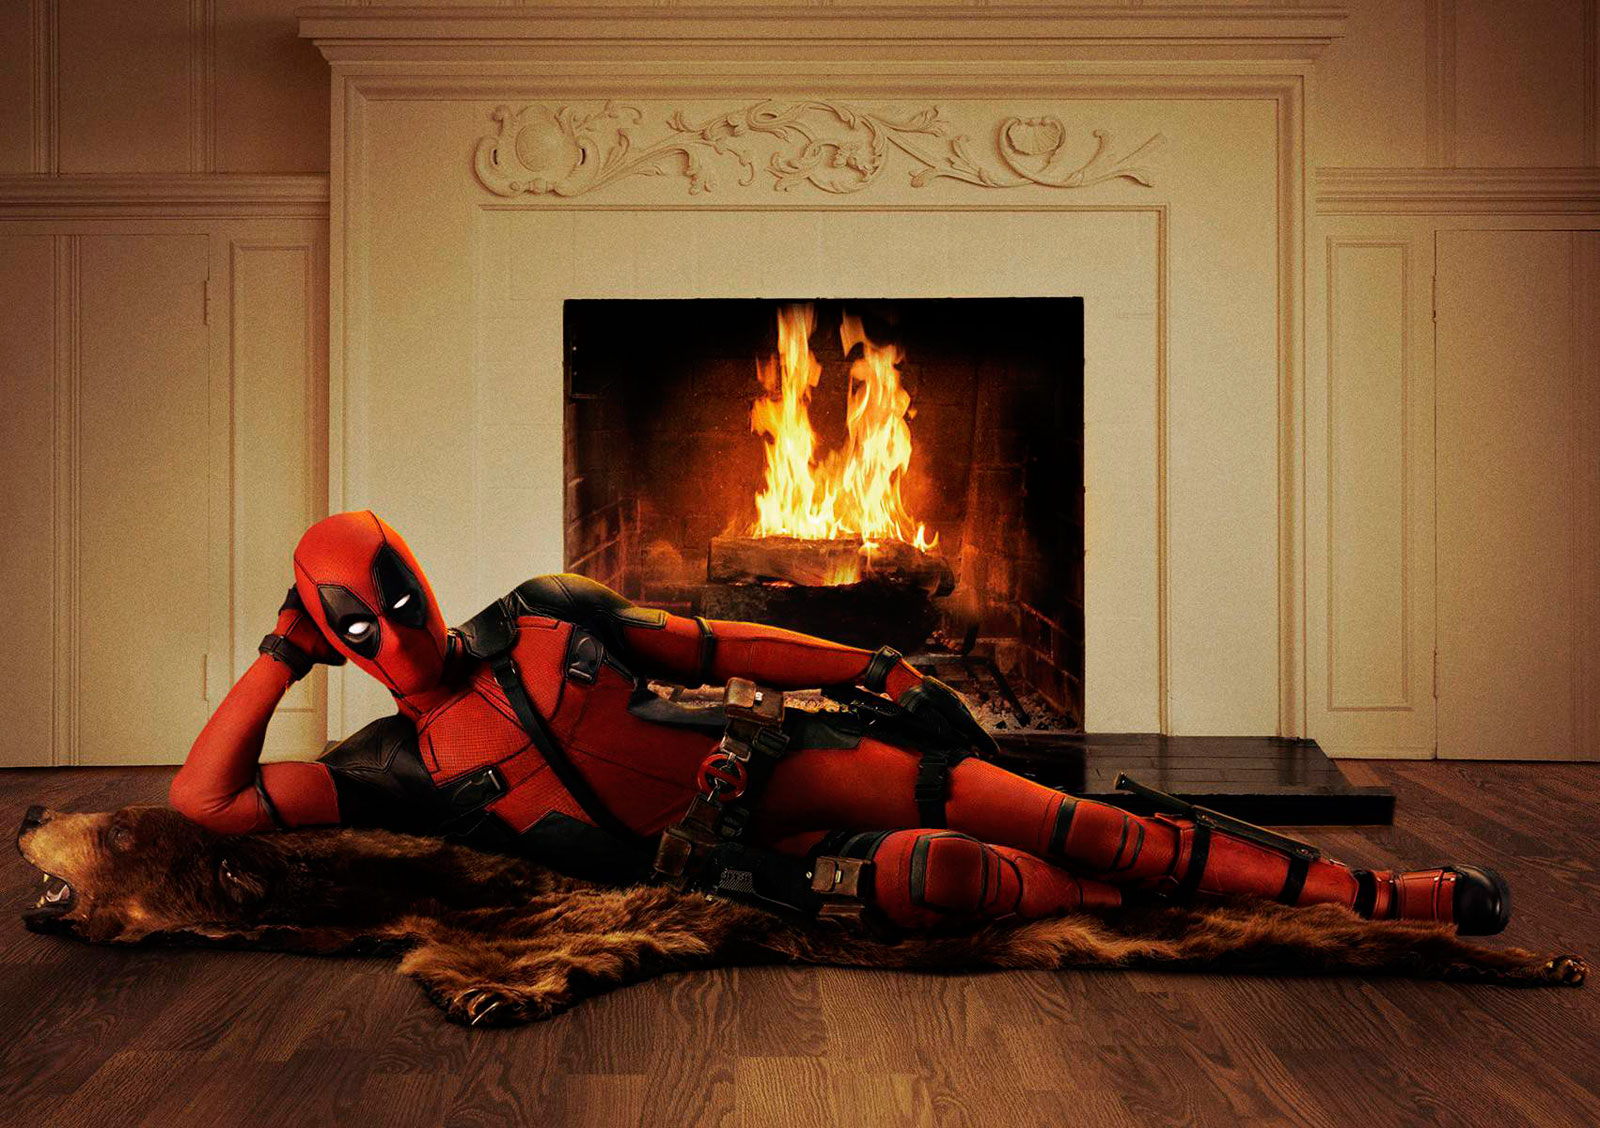 Crítica de Deadpool con Ryan Reynolds